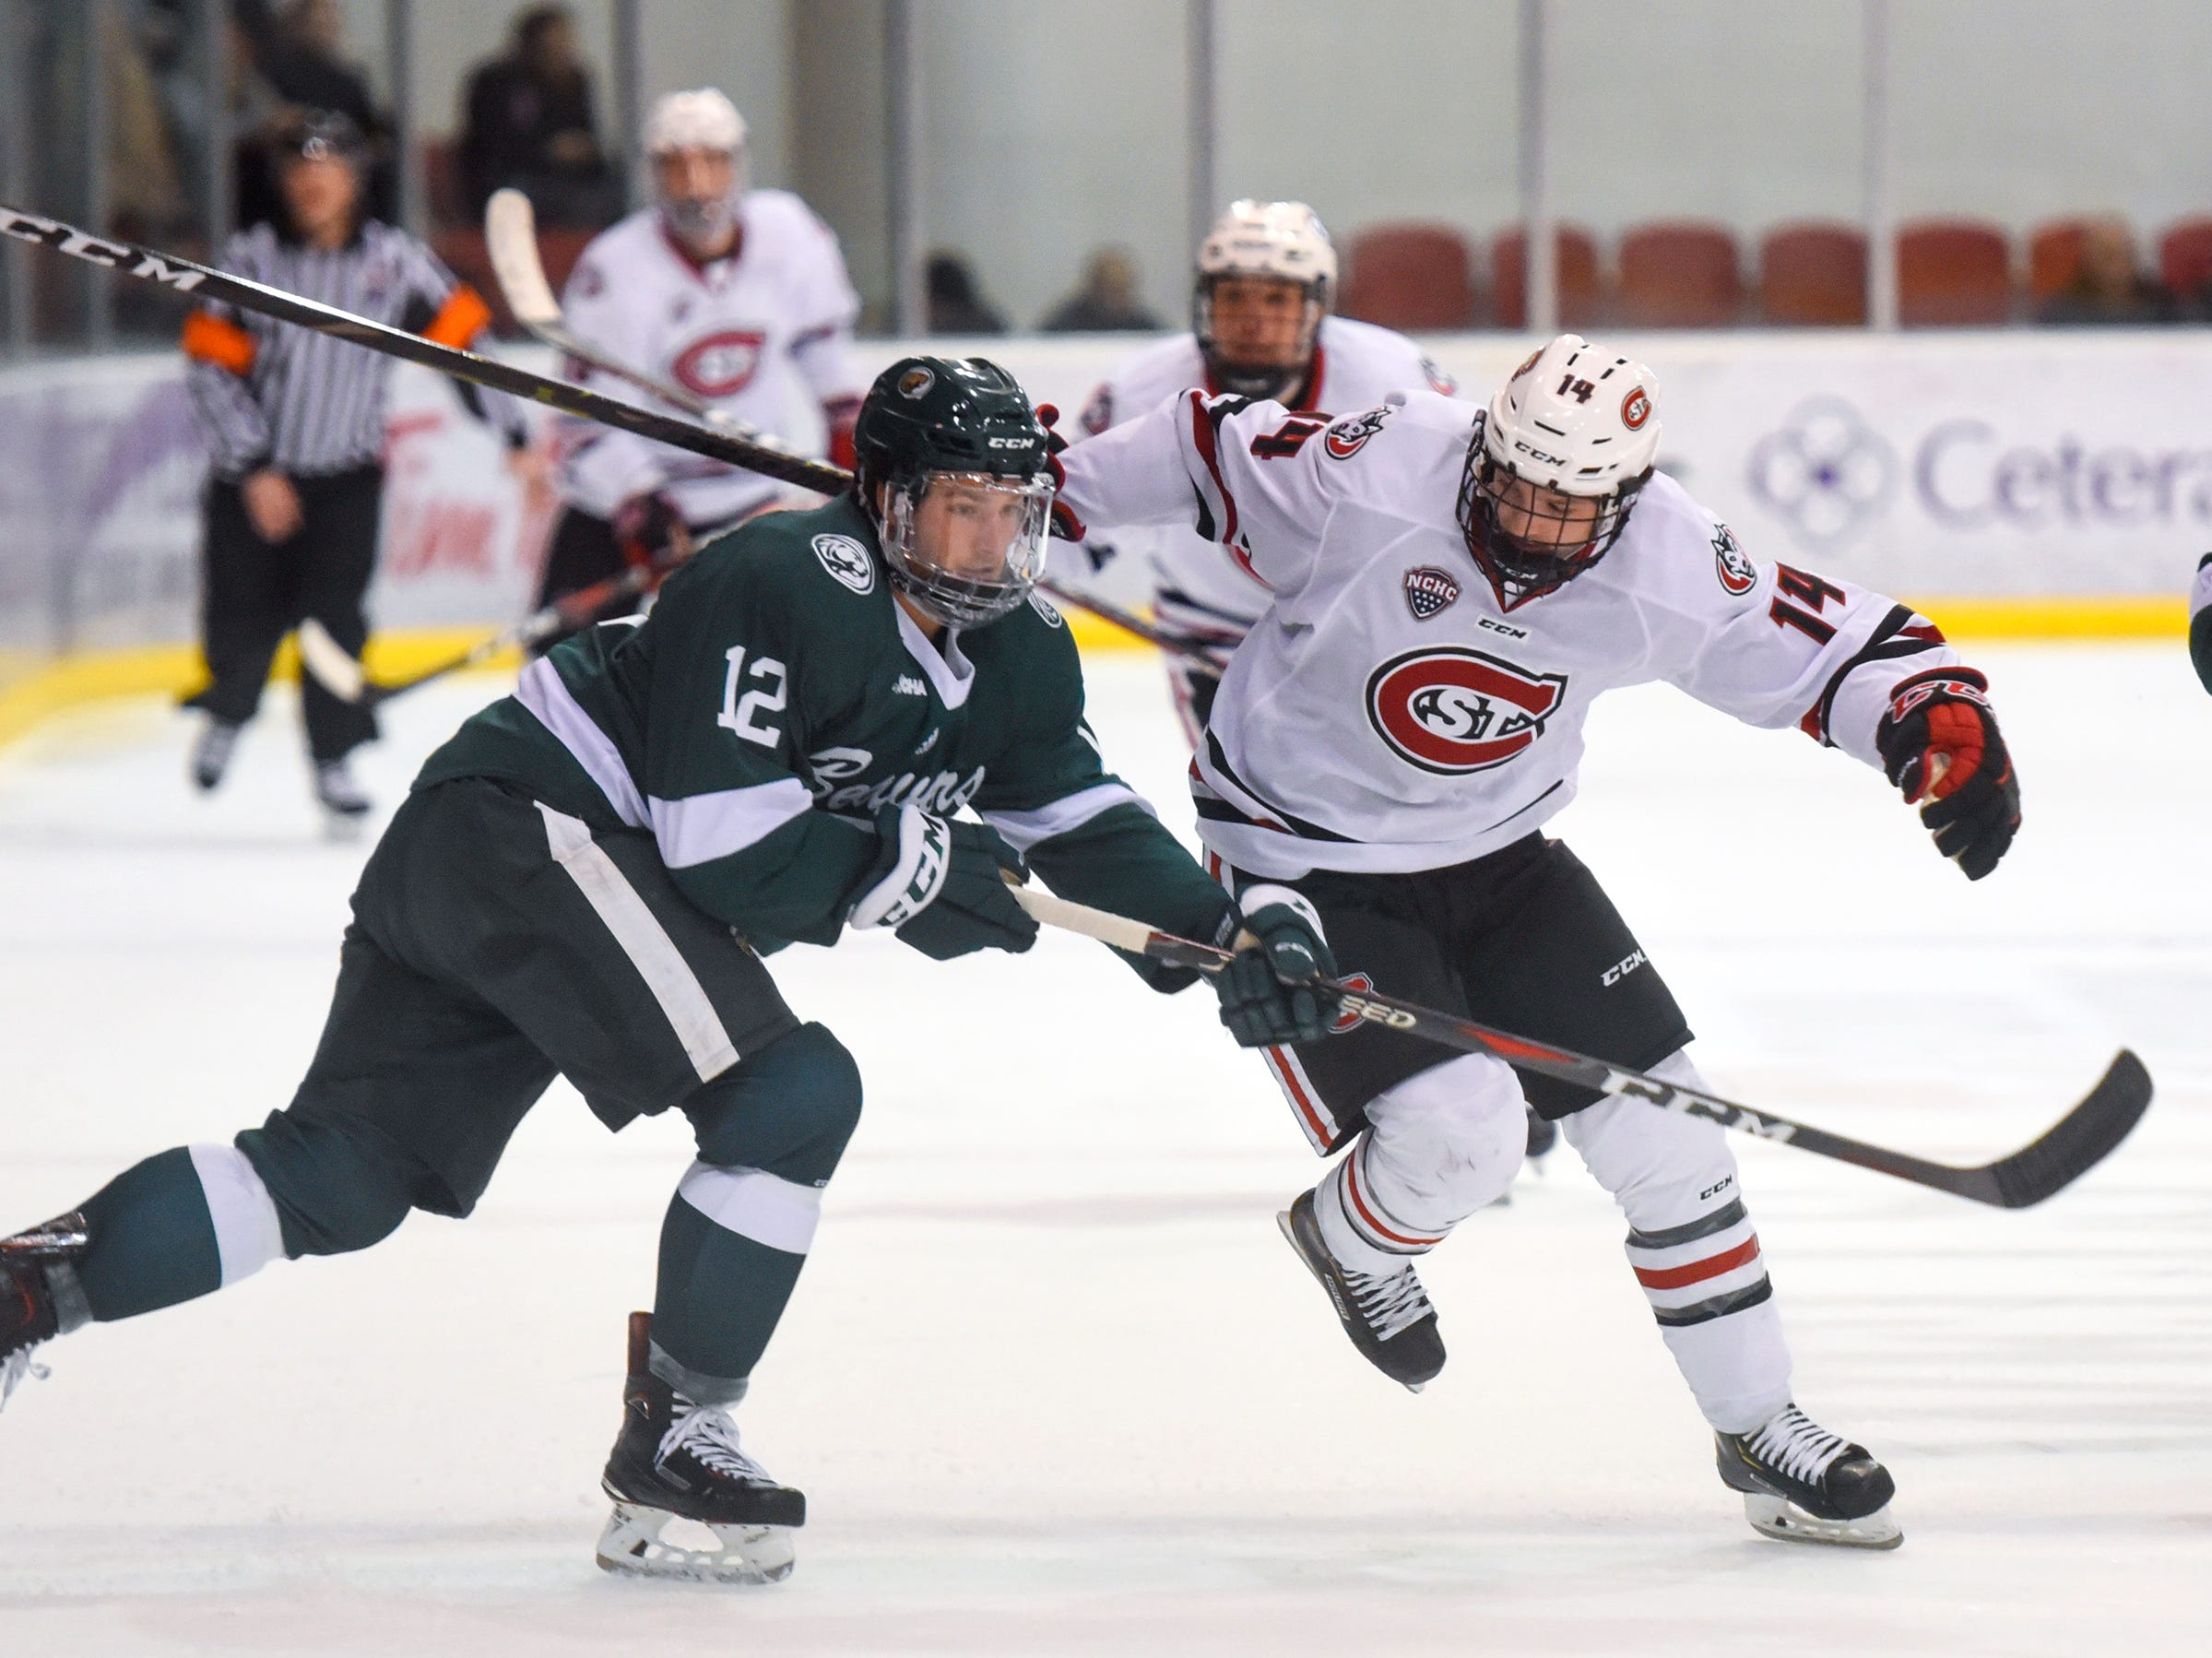 Patrick Newell skates toward the puck during the first period of the Saturday, Nov. 17, game against Bemidji State at the Herb Brooks National Hockey Center in St. Cloud.